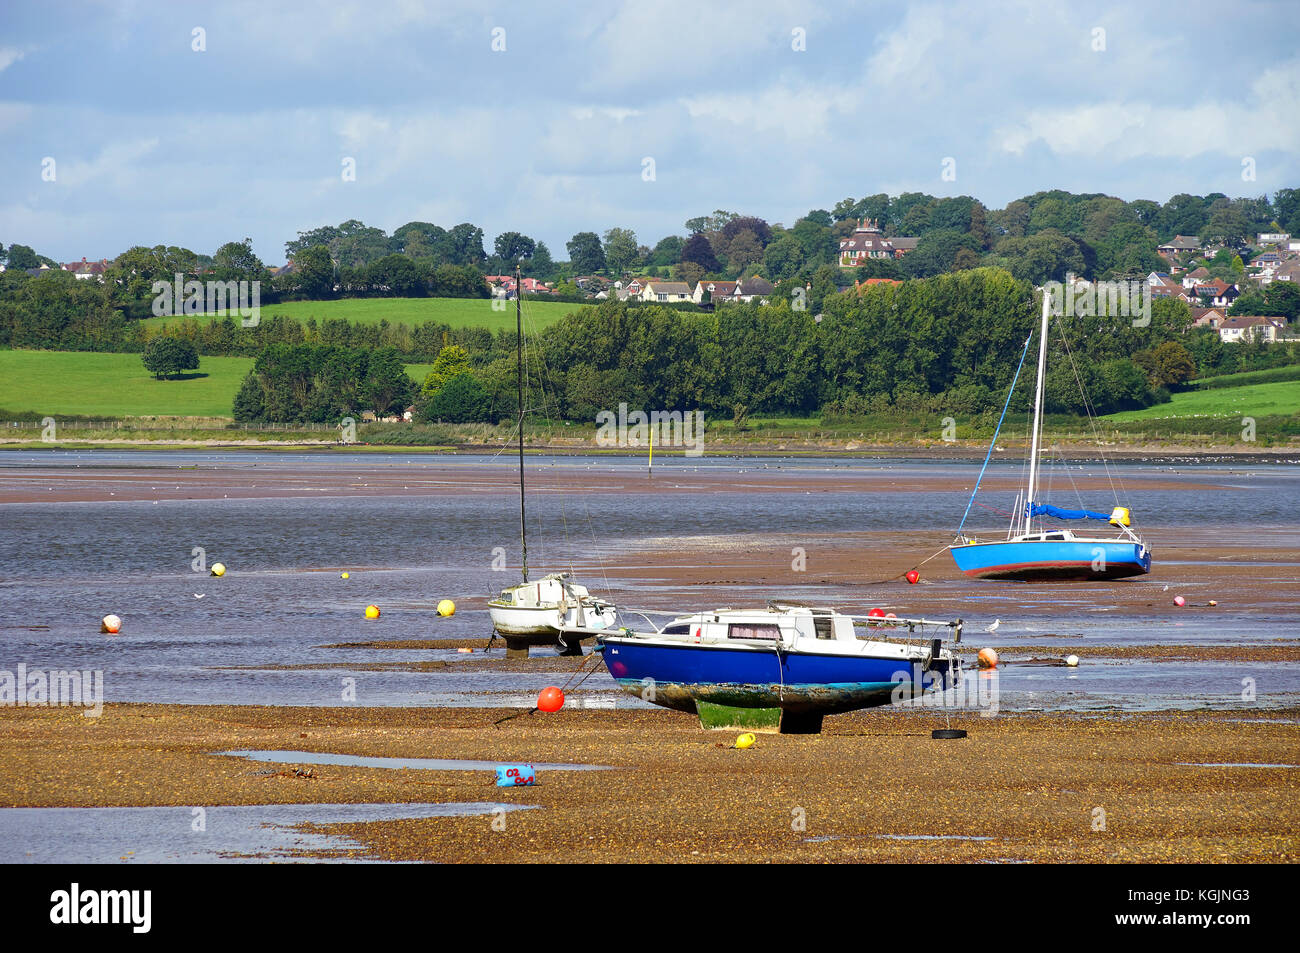 A view from 'the Point' at Exmouth across the Exe Estuary towards the National Trust property 'A La - Stock Image